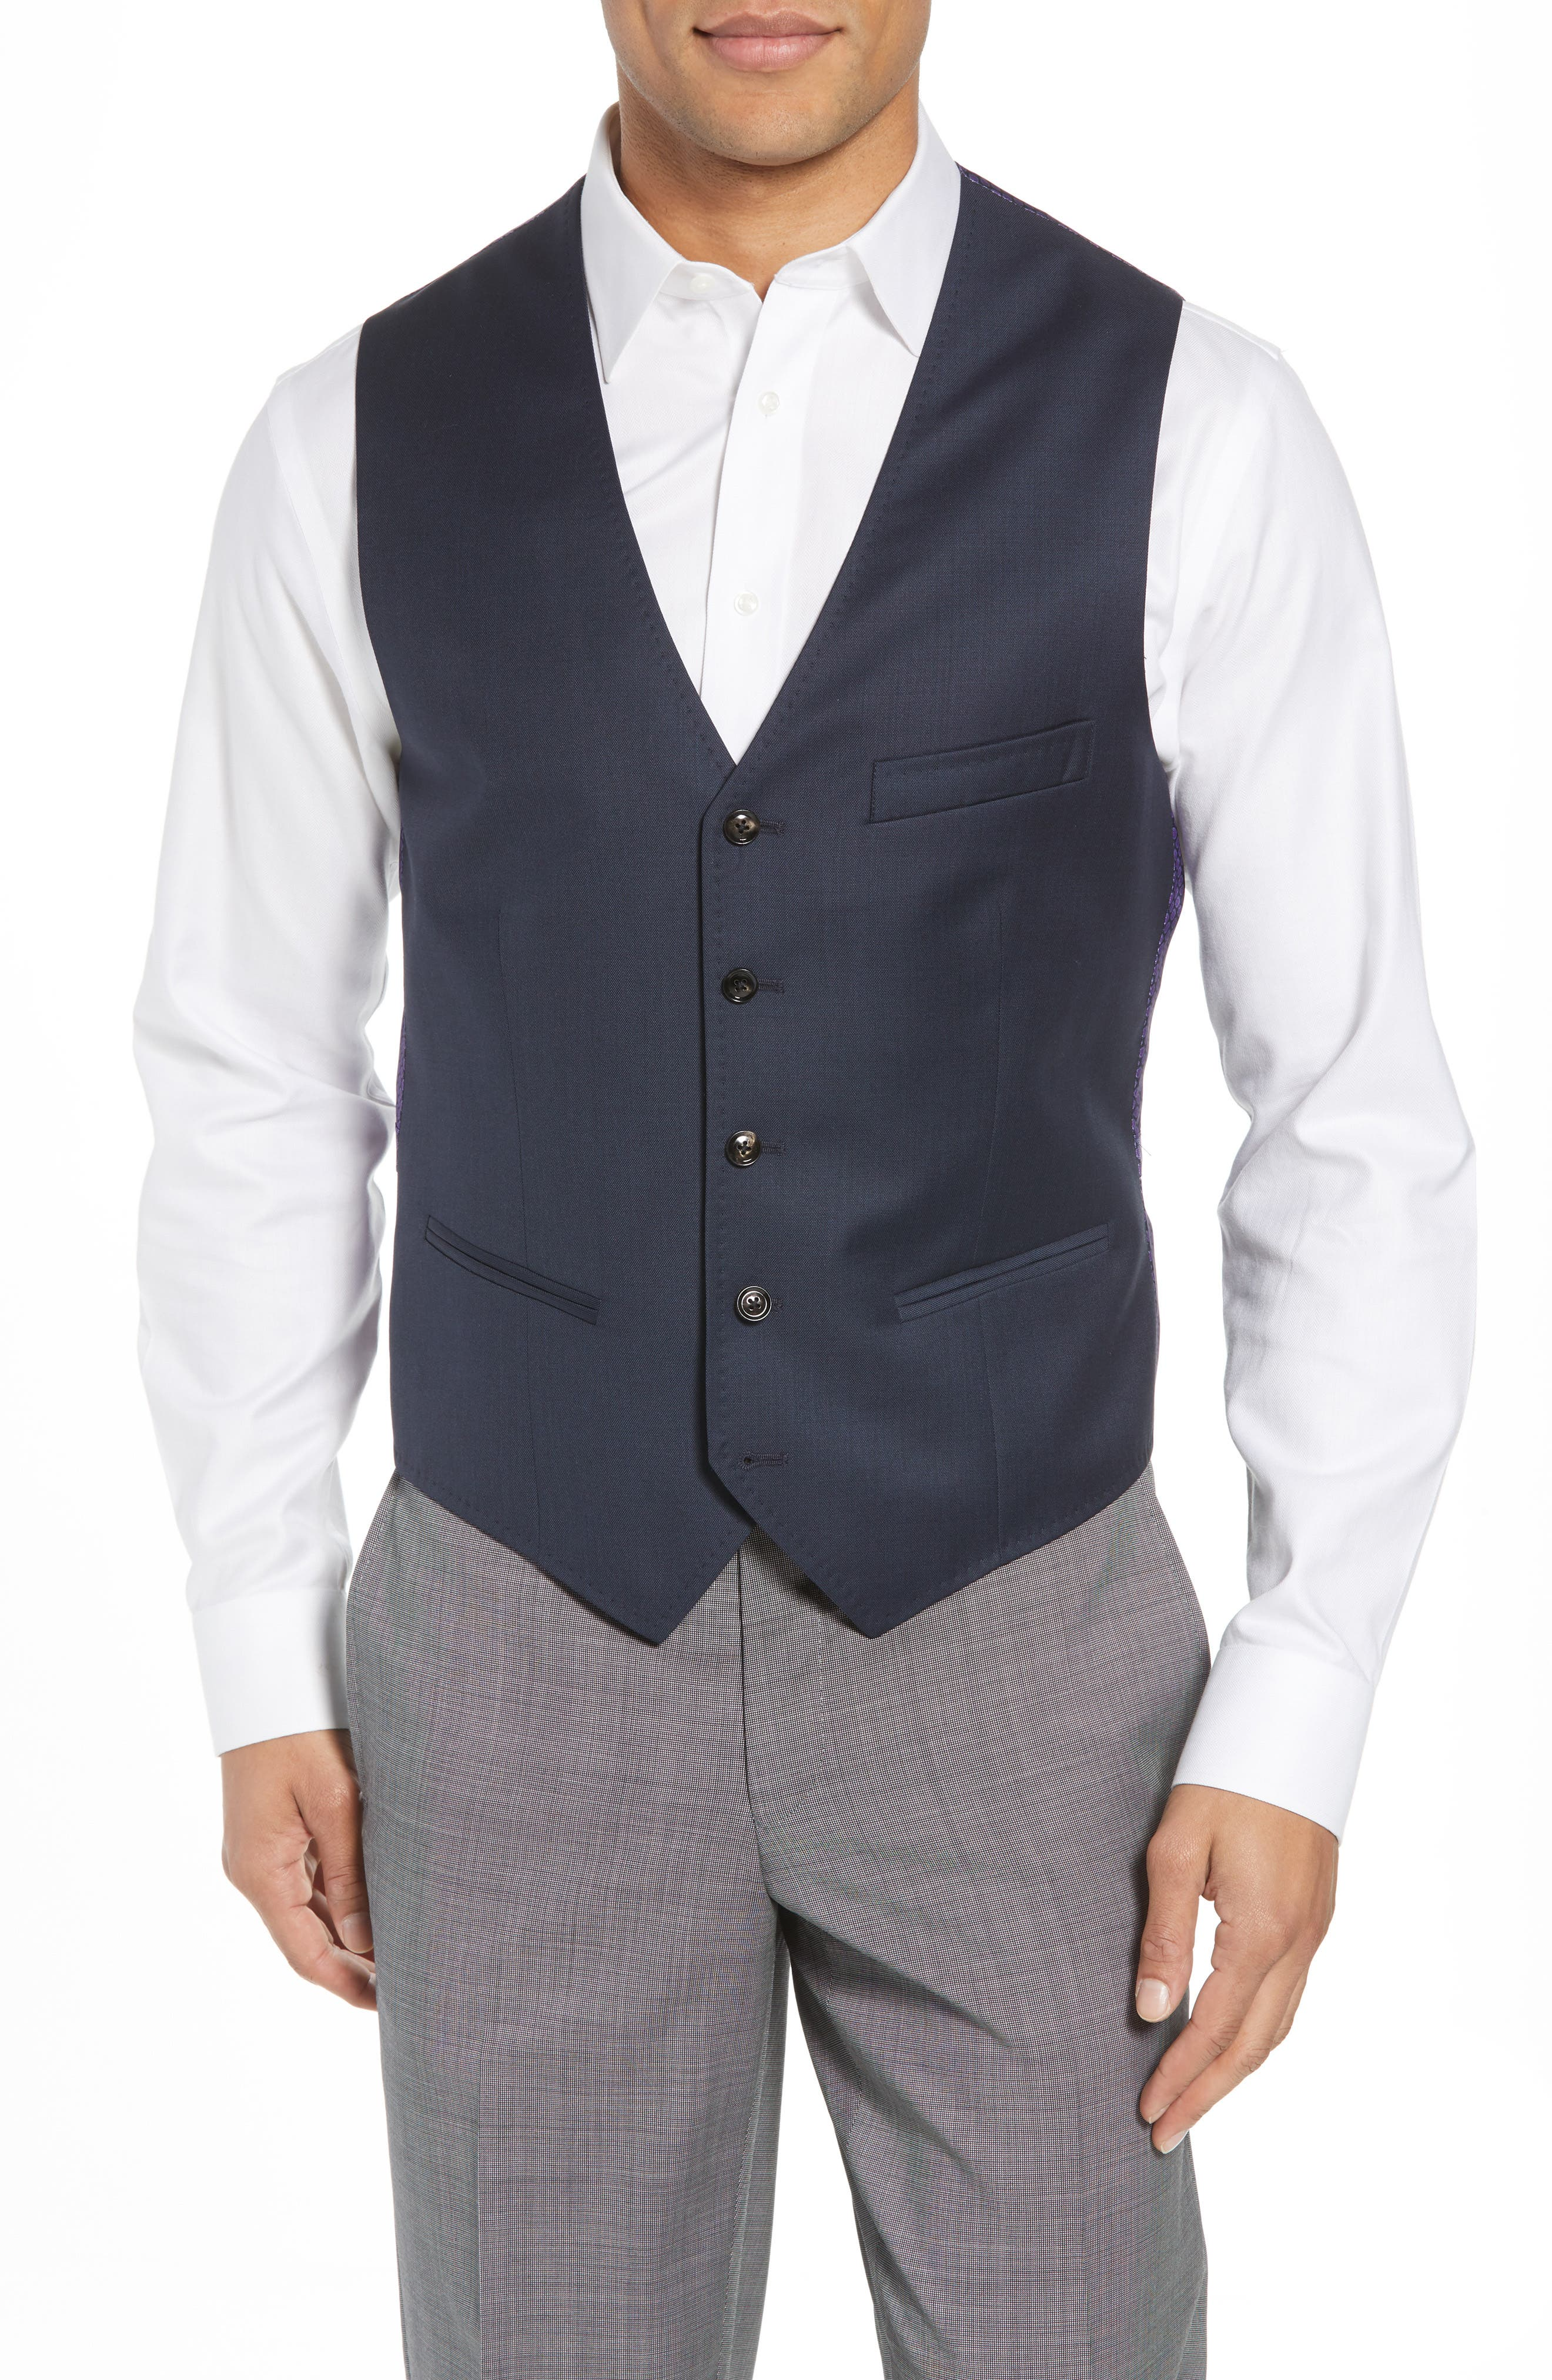 TED BAKER LONDON,                             Troy Trim Fit Solid Wool Vest,                             Main thumbnail 1, color,                             OLD BLUE